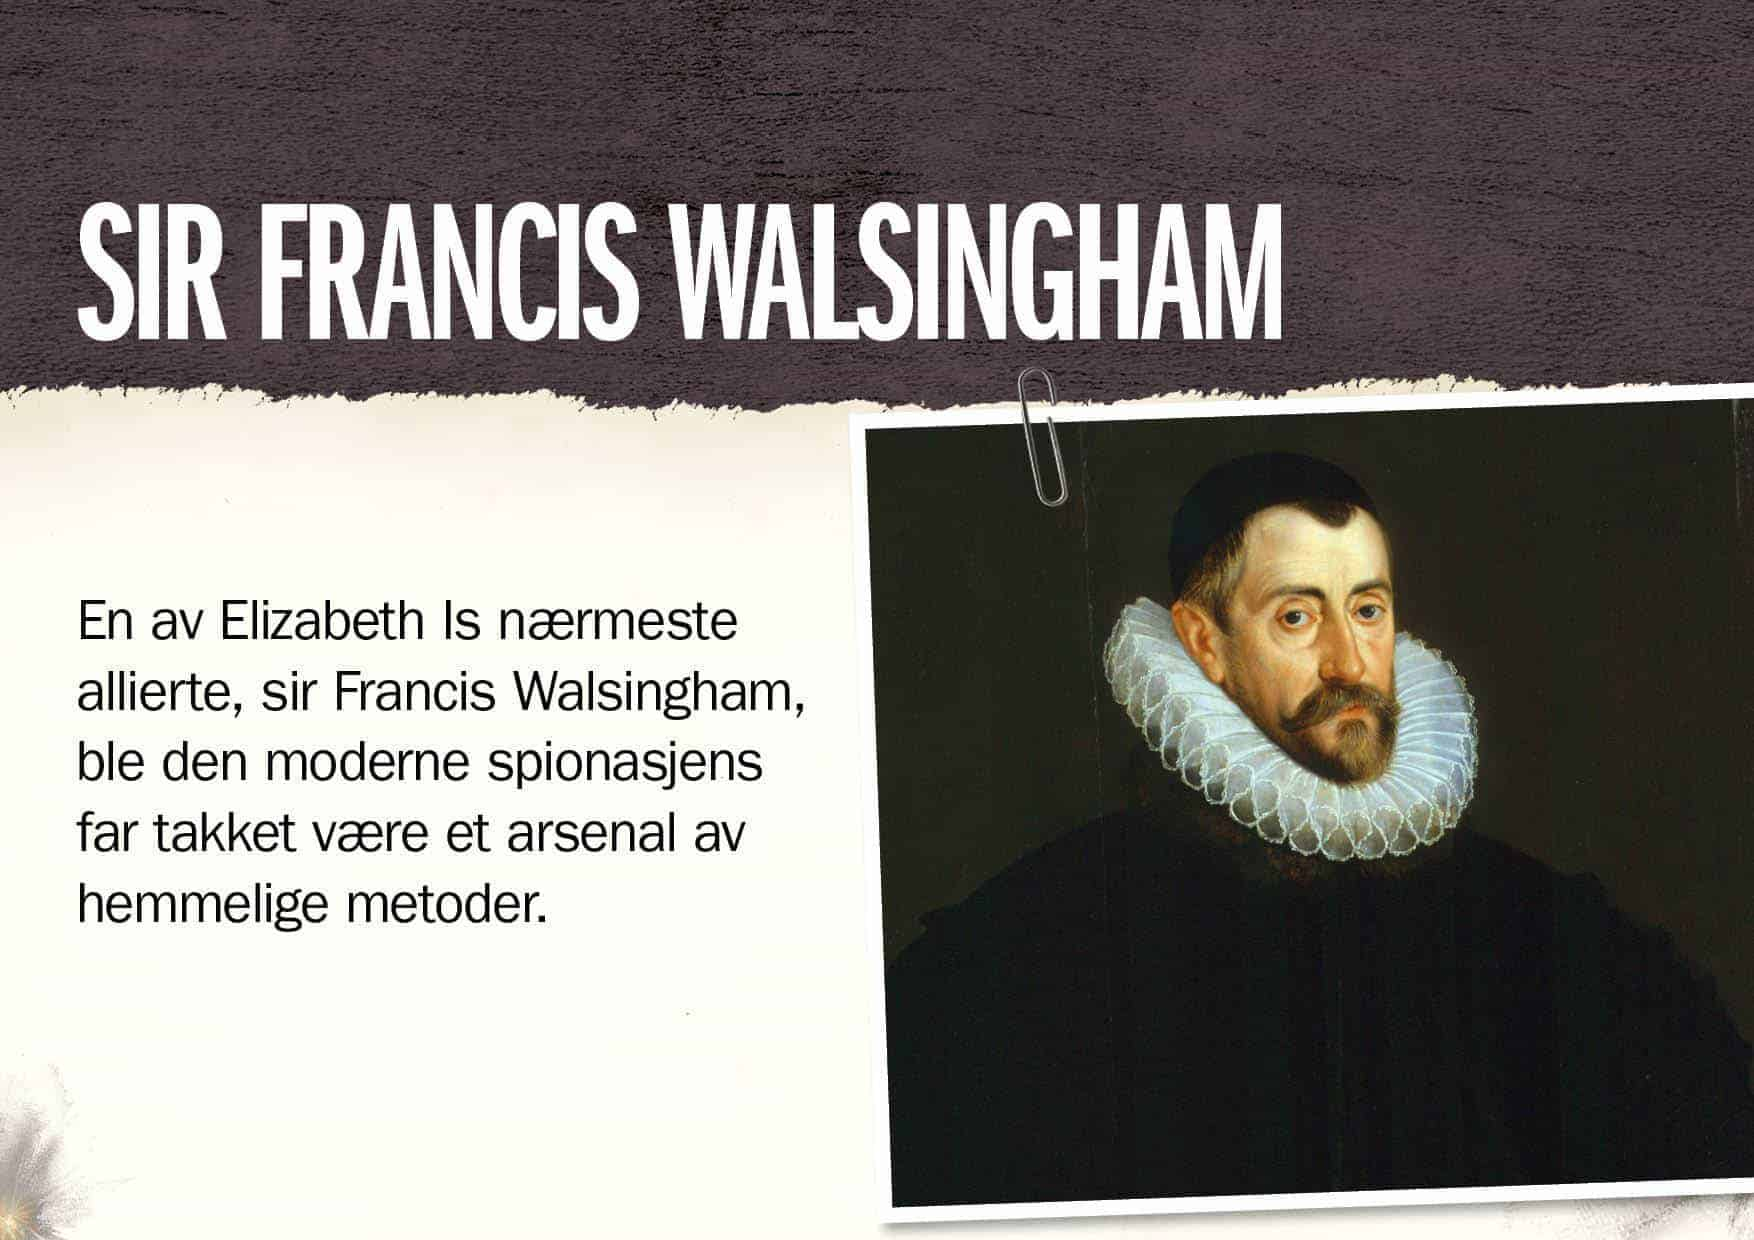 Superspioner: Sir Francis Walsingham